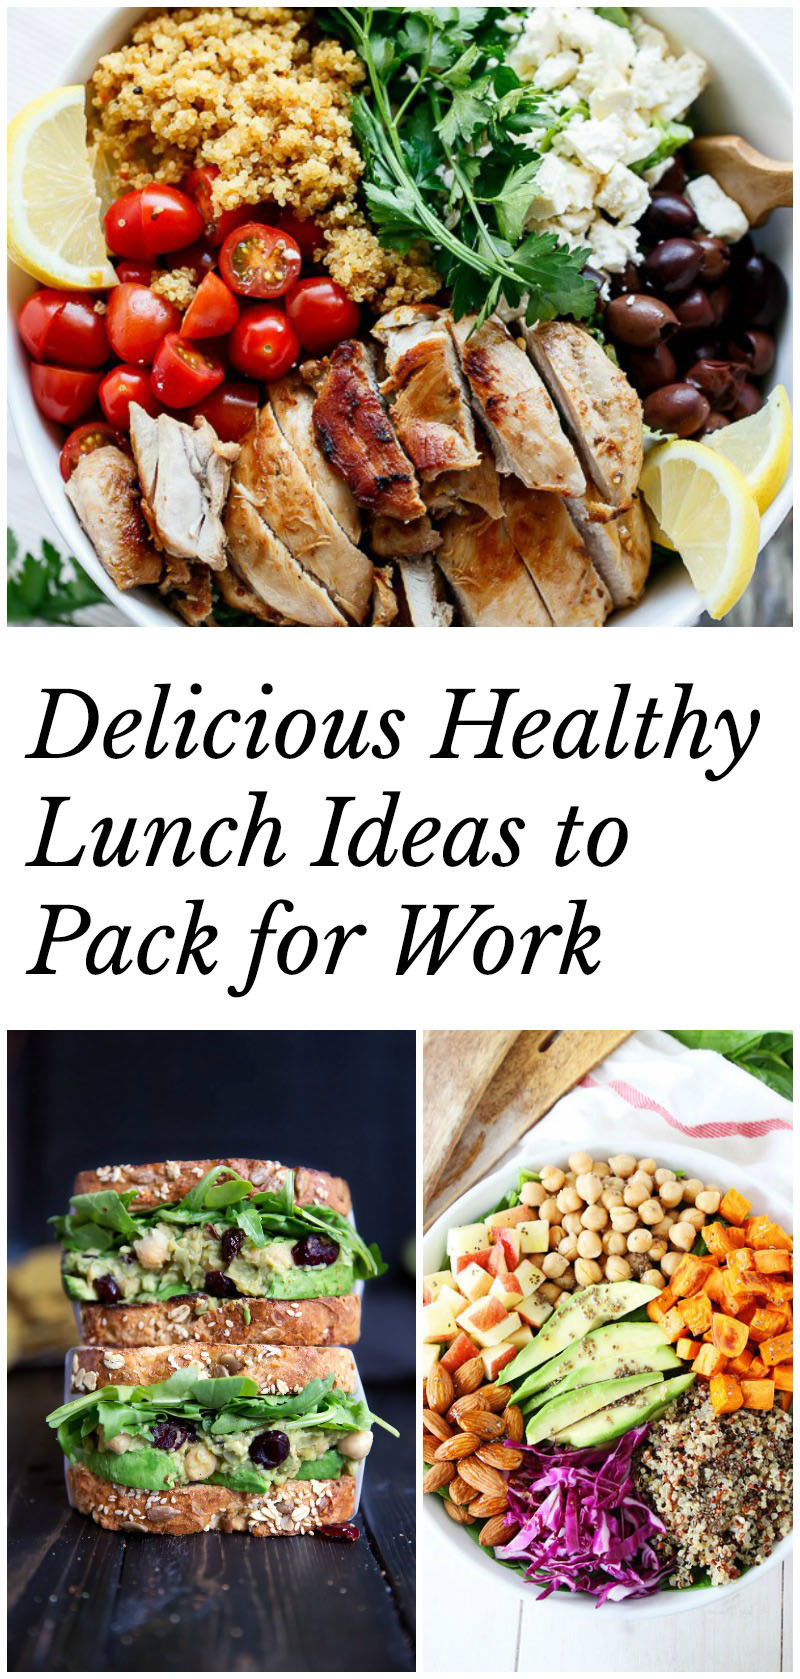 Healthy Lunches To Pack For Work  Healthy Lunch Ideas to Pack for Work 40 recipes